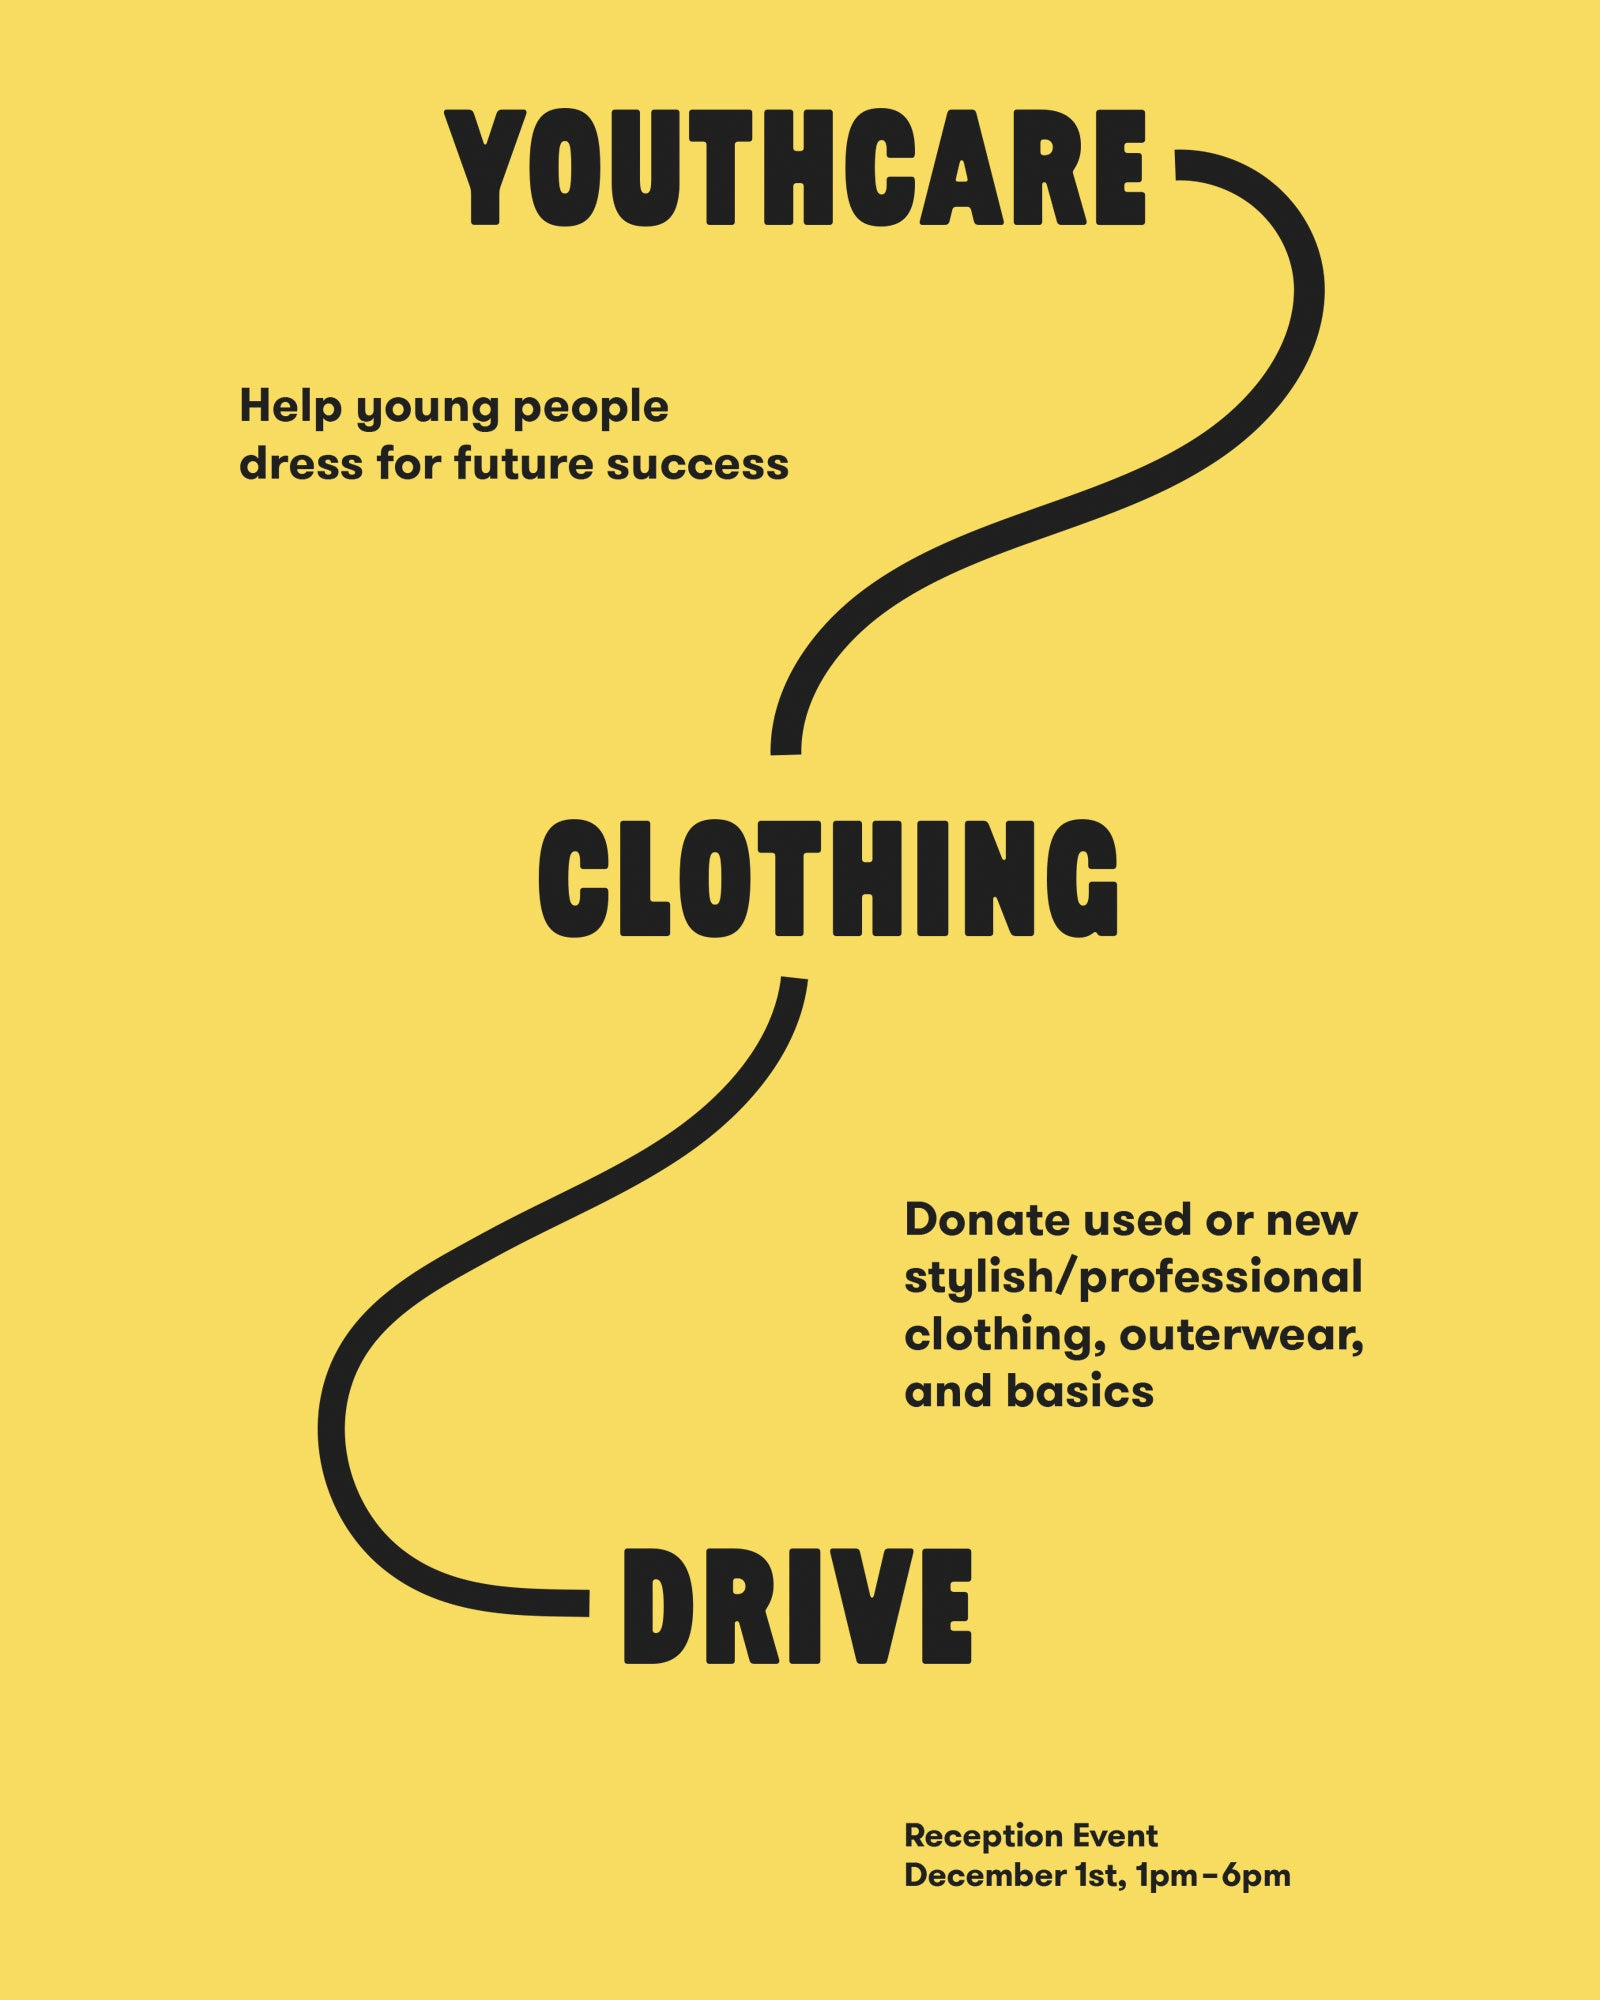 Youthcare Winter Clothing Drive Donation